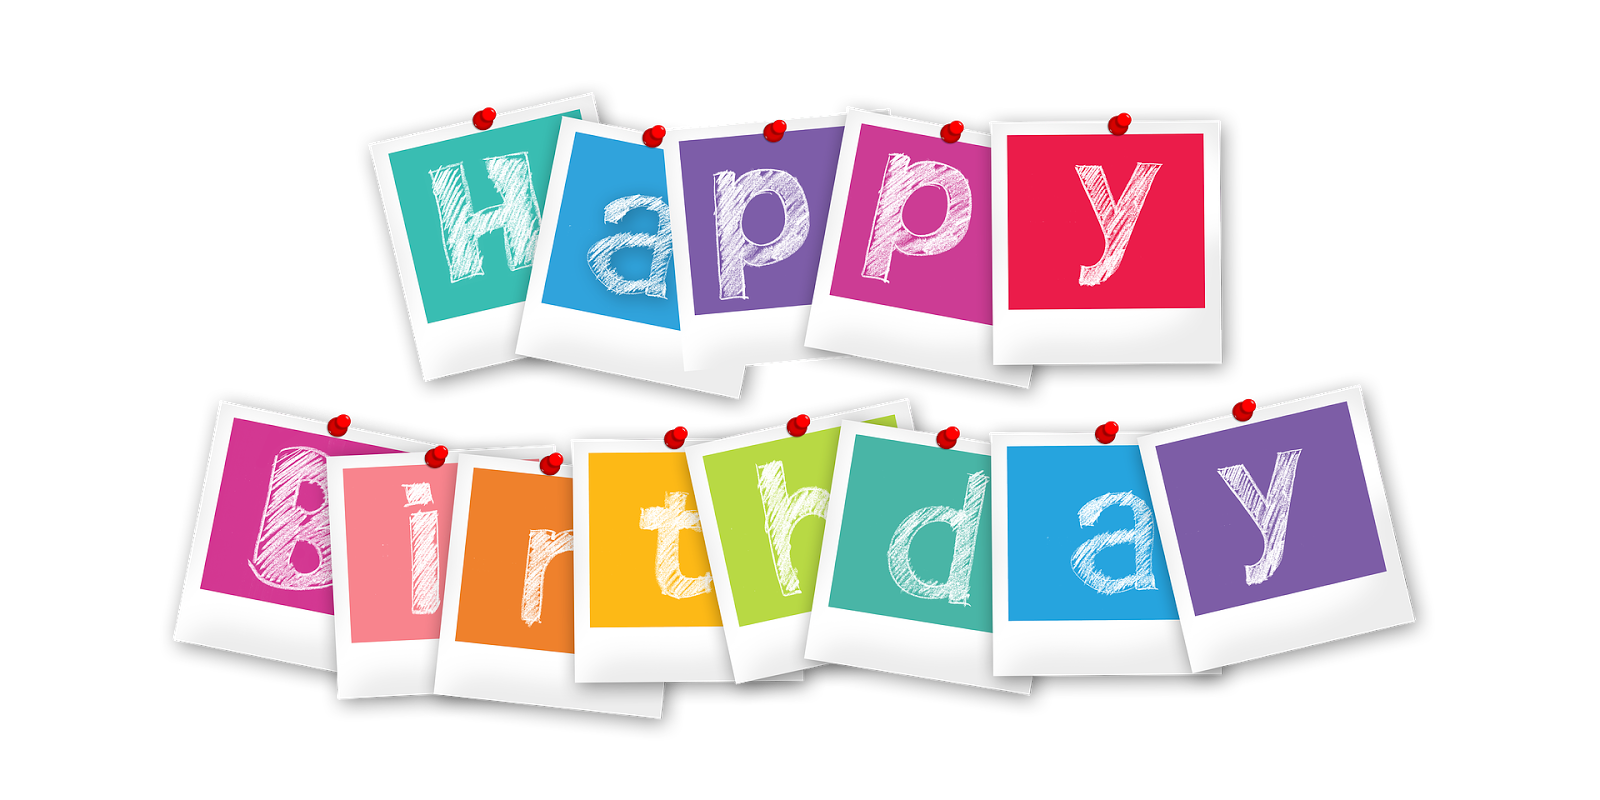 Happy Birthday Wishes For Facebook Online Friends Birthday Wishes Birthady Images Birthday Wishes Messages Clever Birthday Wishes Happy Birthday Crown